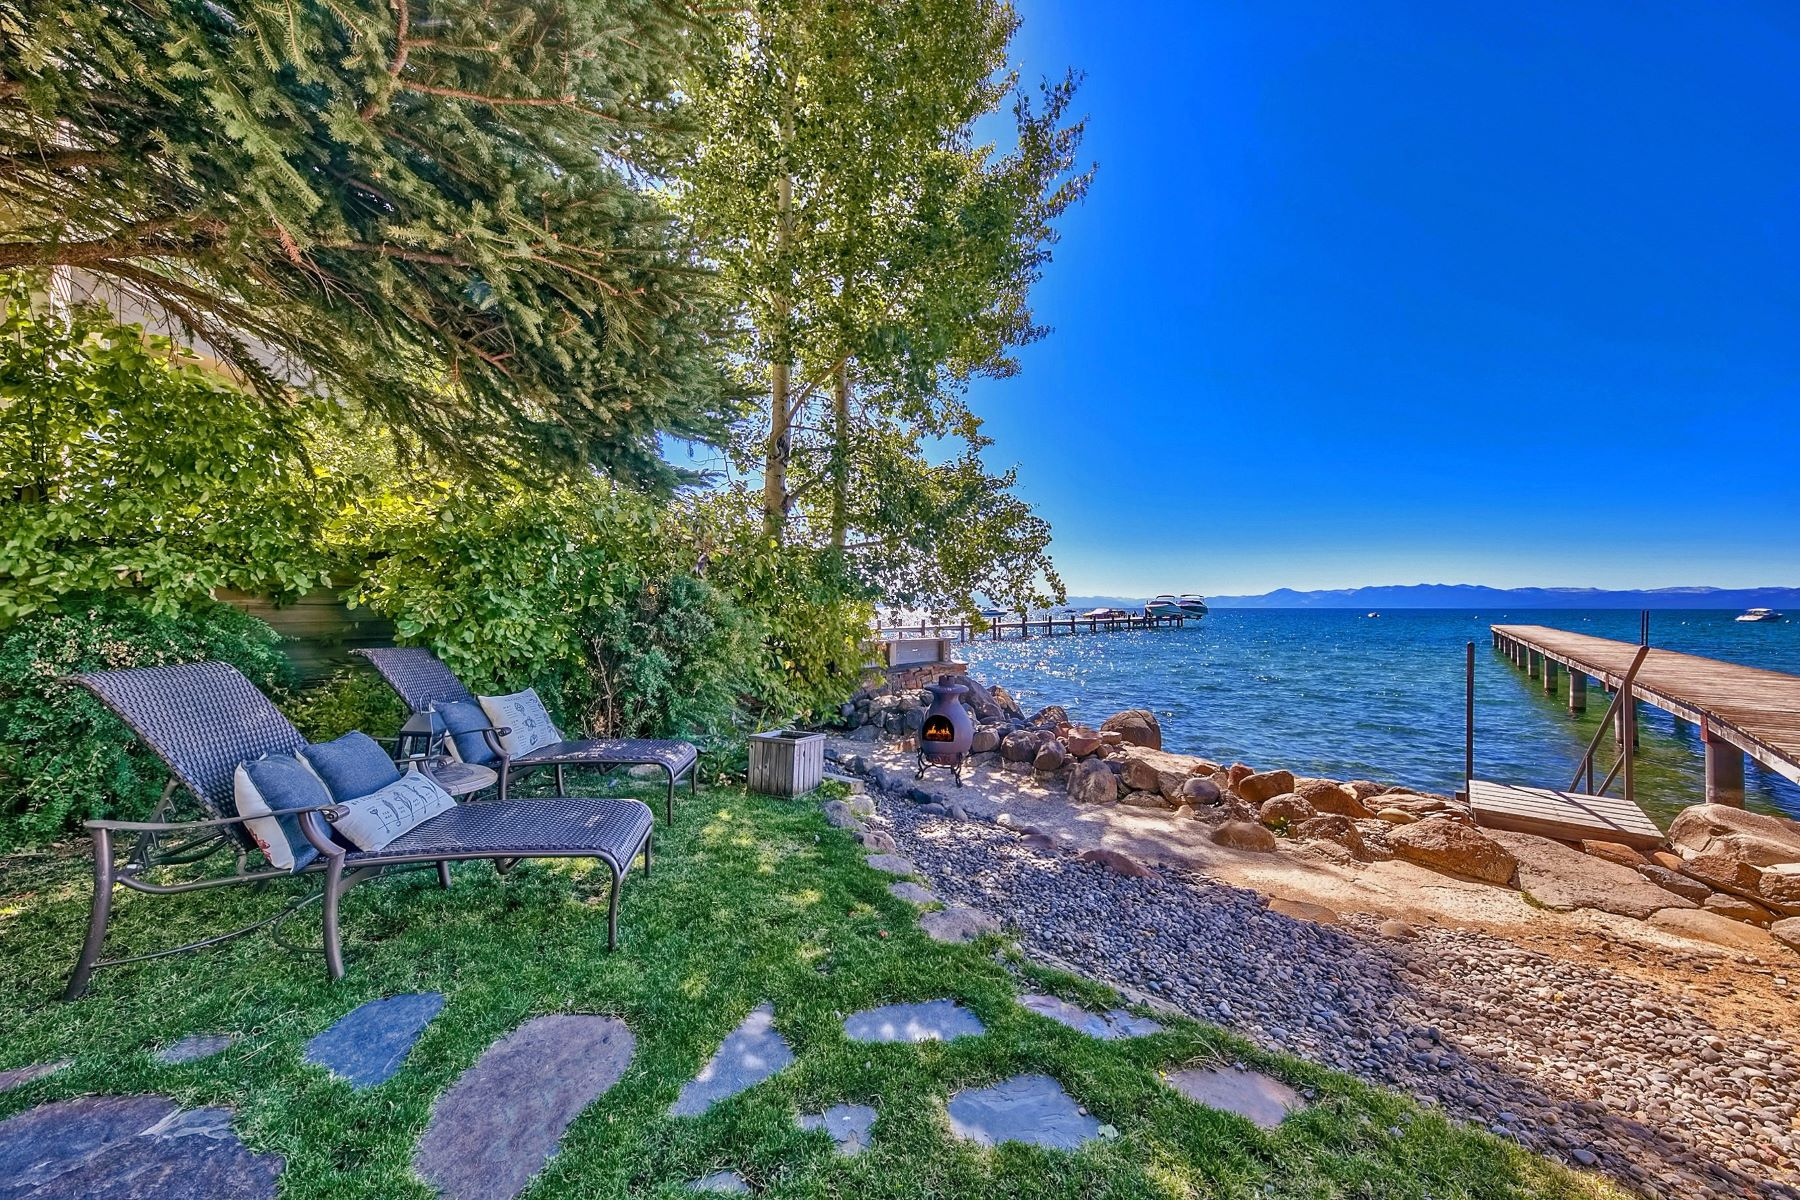 Additional photo for property listing at Lakefront Gem on Brockway Vista Avenue 8730 Brockway Vista Ave Kings Beach, California 96143 United States